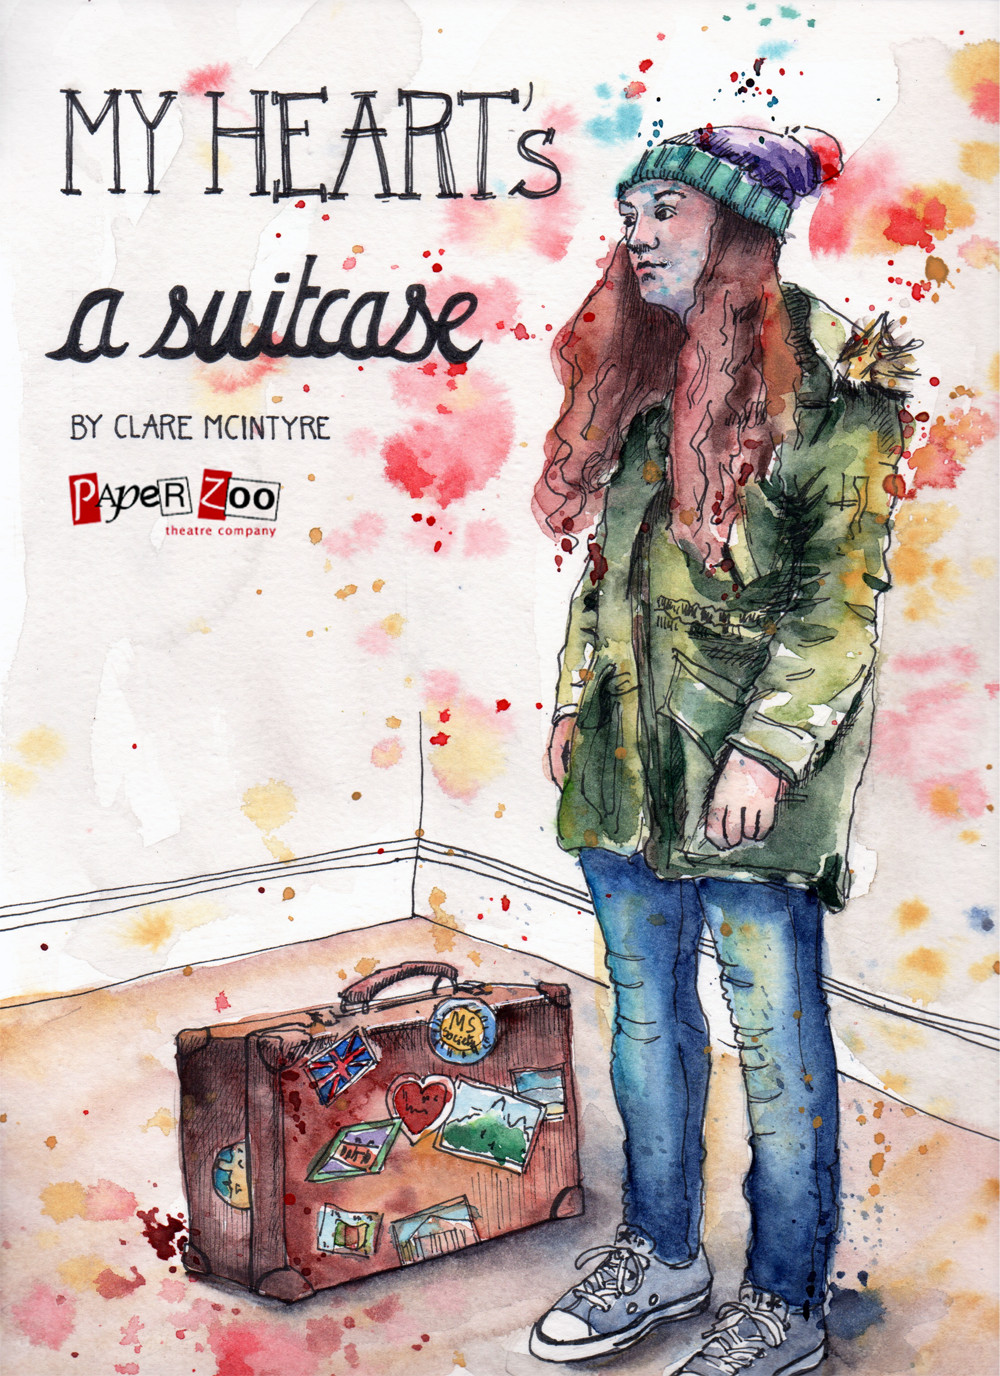 My Heart's a Suitcase by Clare McIntyre - Poster Illustration By Sophie Peanut